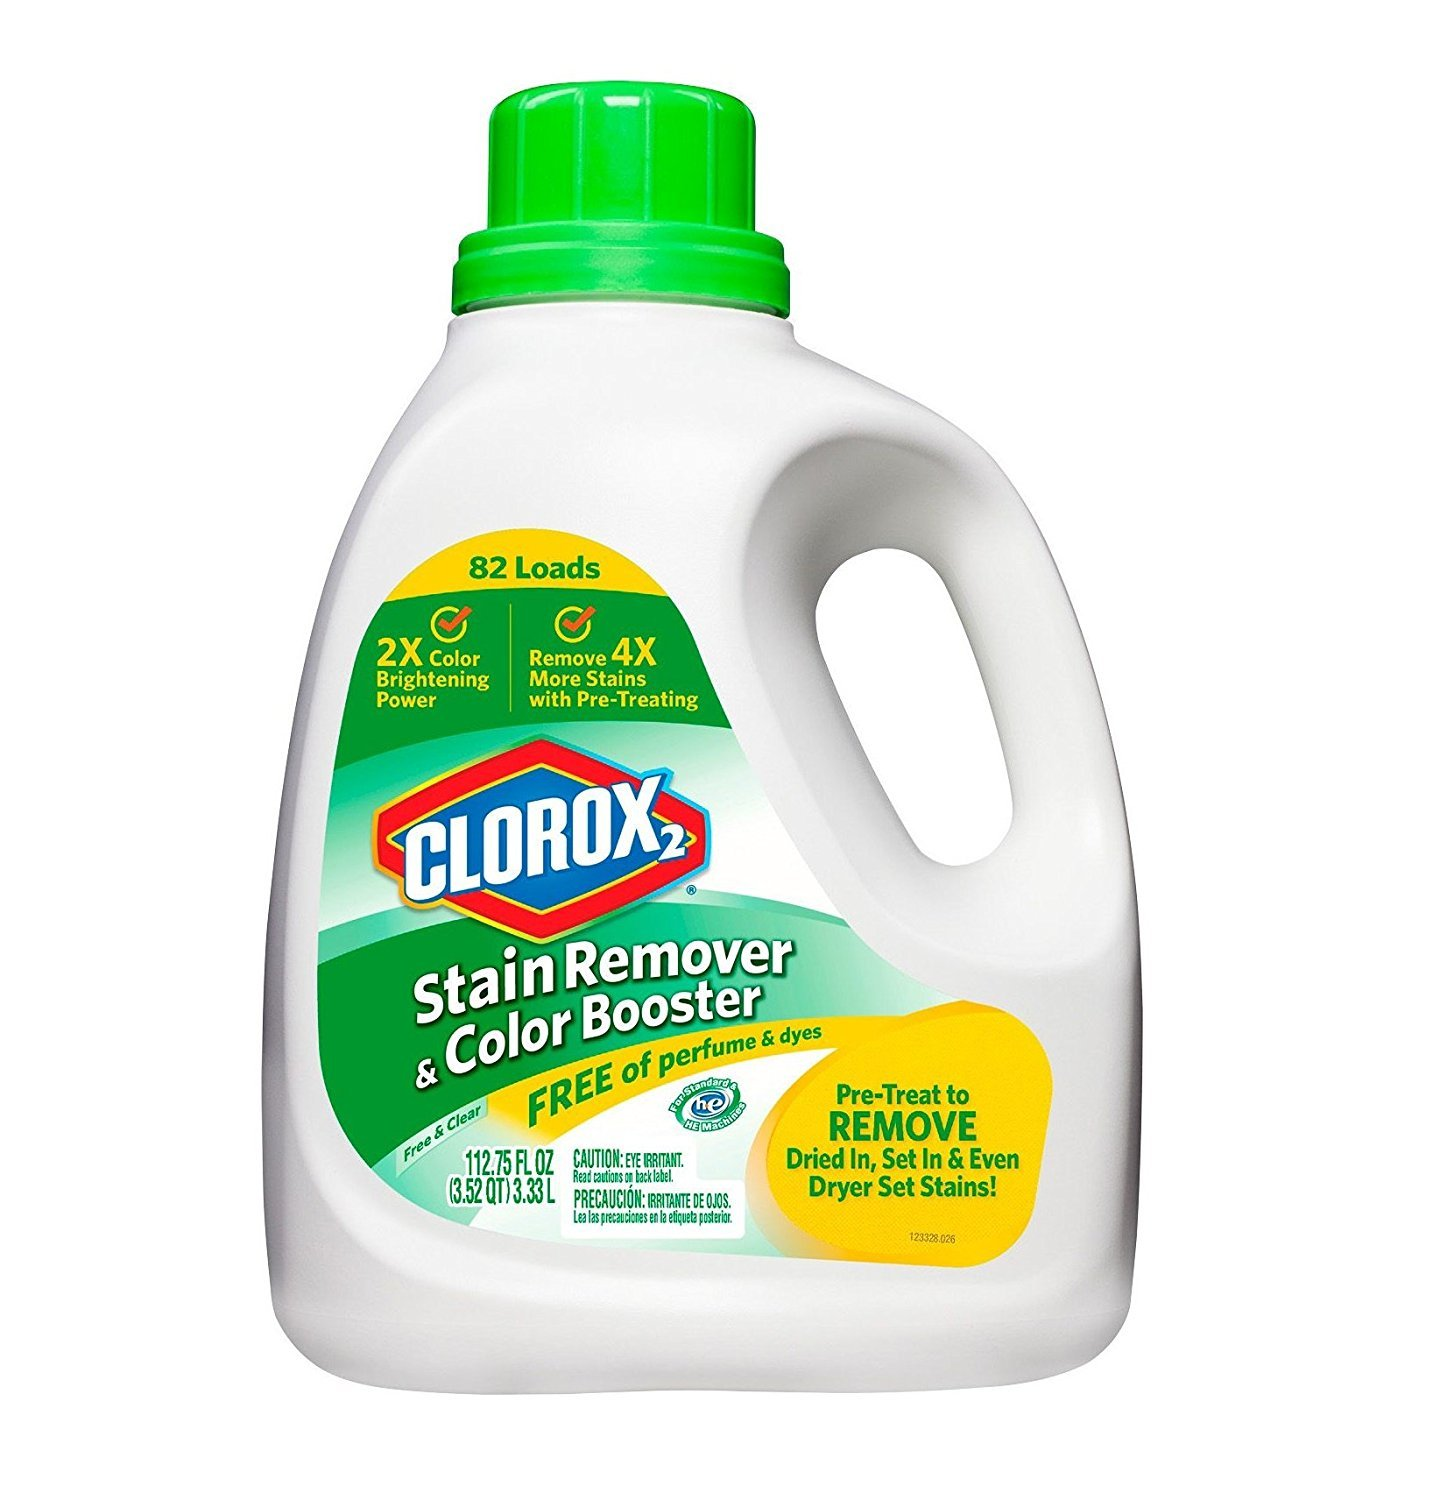 Clorox 2 H.E. Stain Remover & Color Booster, 112.75 Fluid Ounce